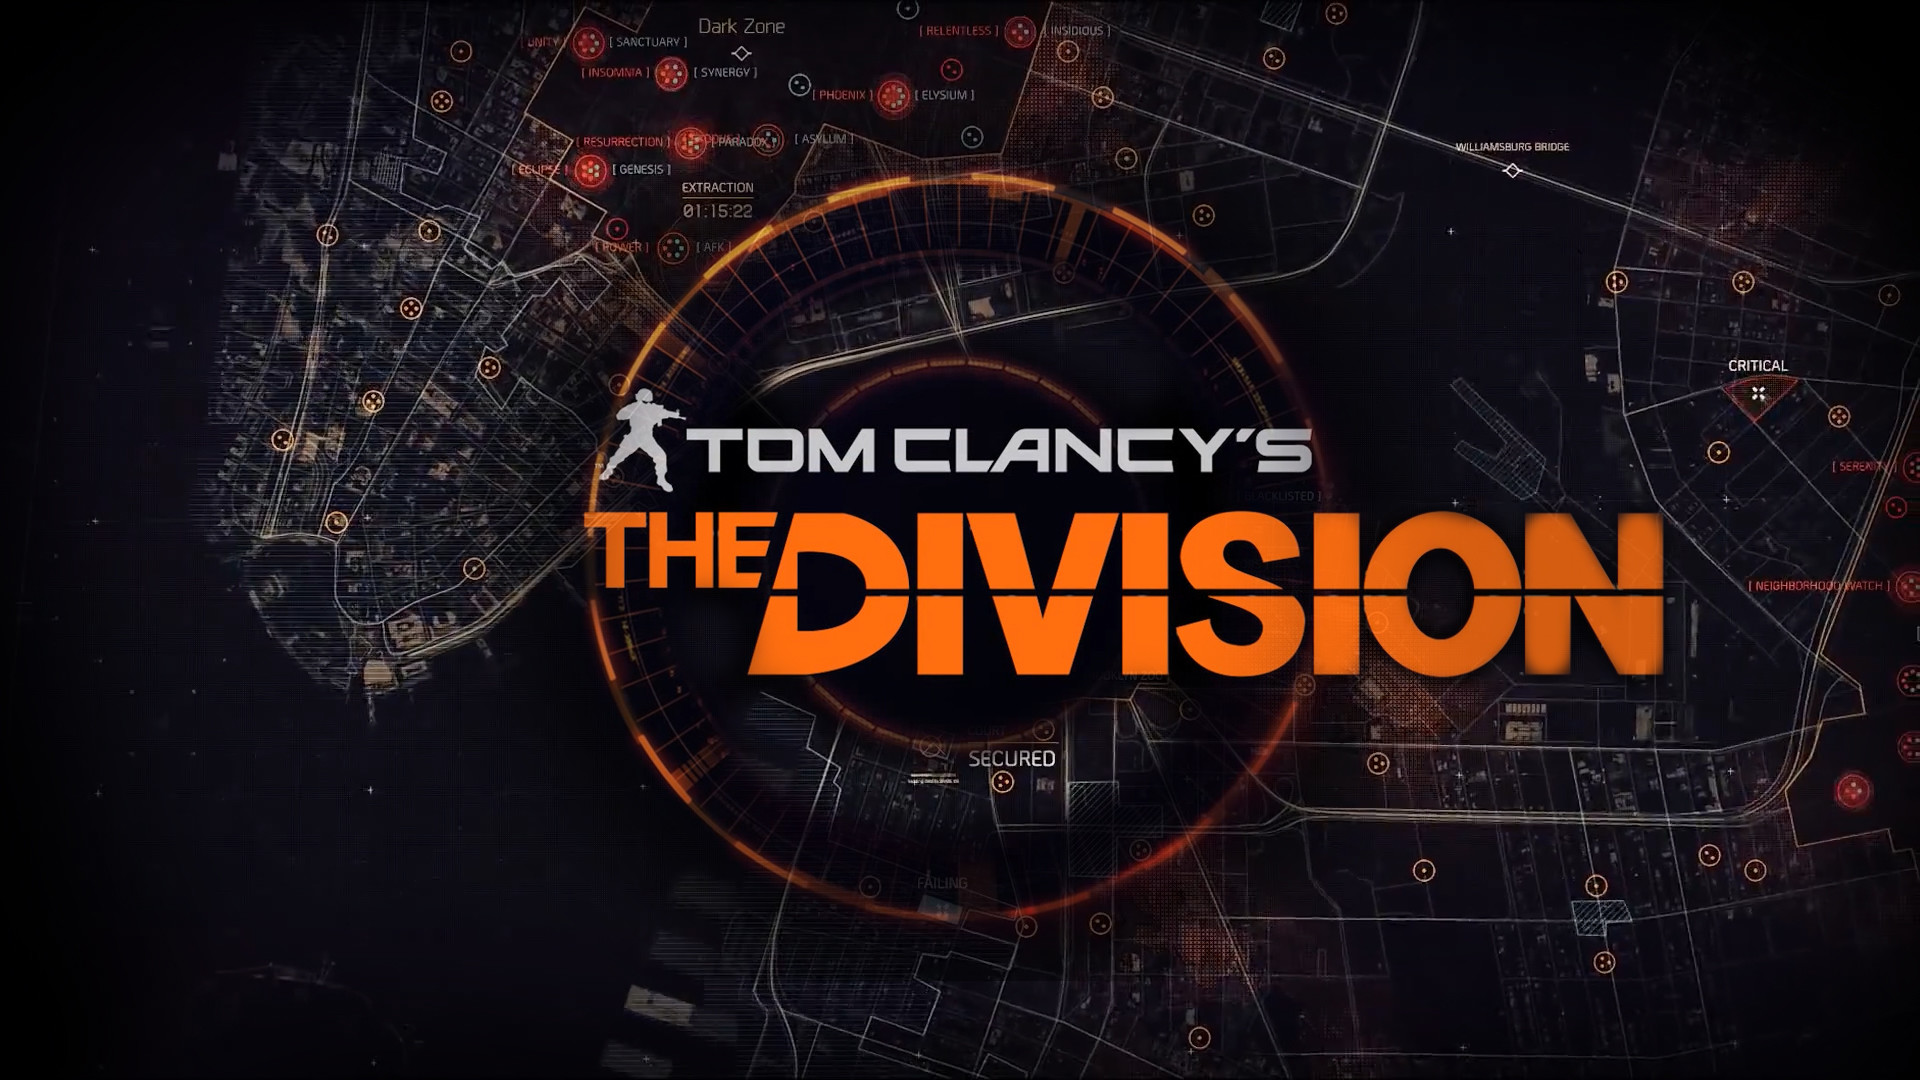 Tom Clancy's The Division Computer Wallpaper